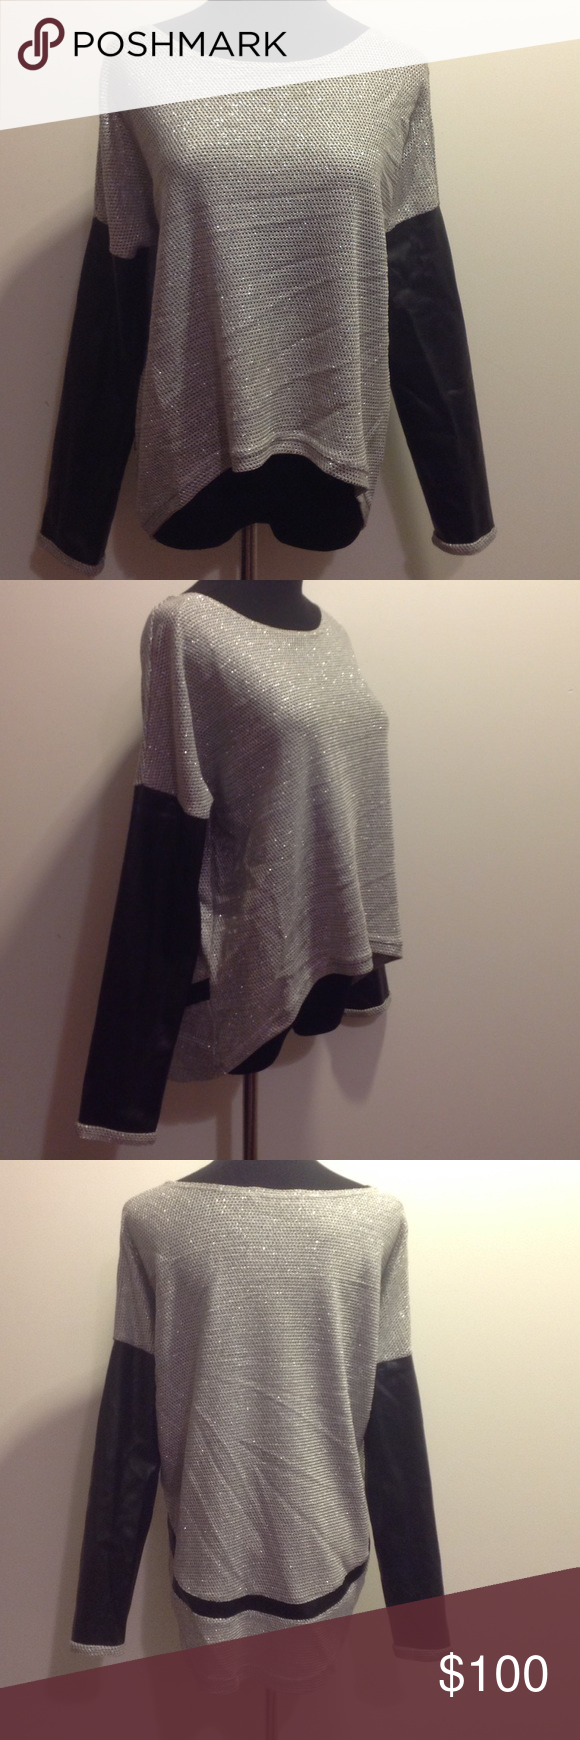 Generation Love Metallic Sweater with Leather Minimal wear size xs/s.  Fits like a small imo Generation Love Sweaters Crew & Scoop Necks